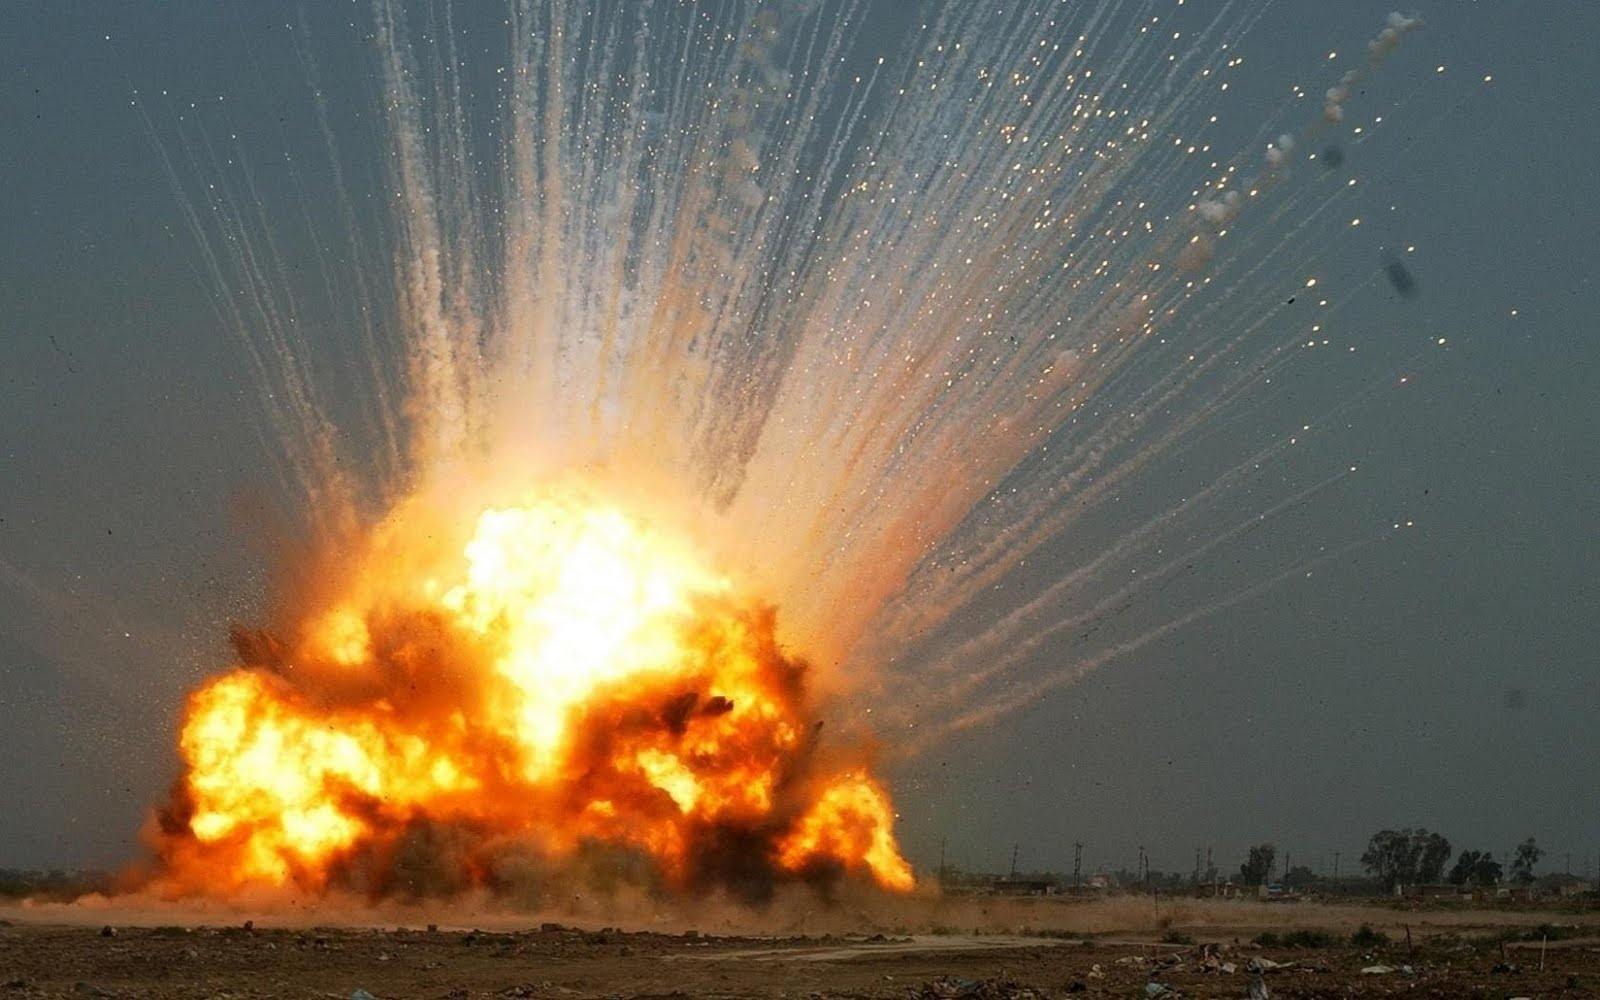 INTelligence: A new kind of missile makes for even bigger explosions